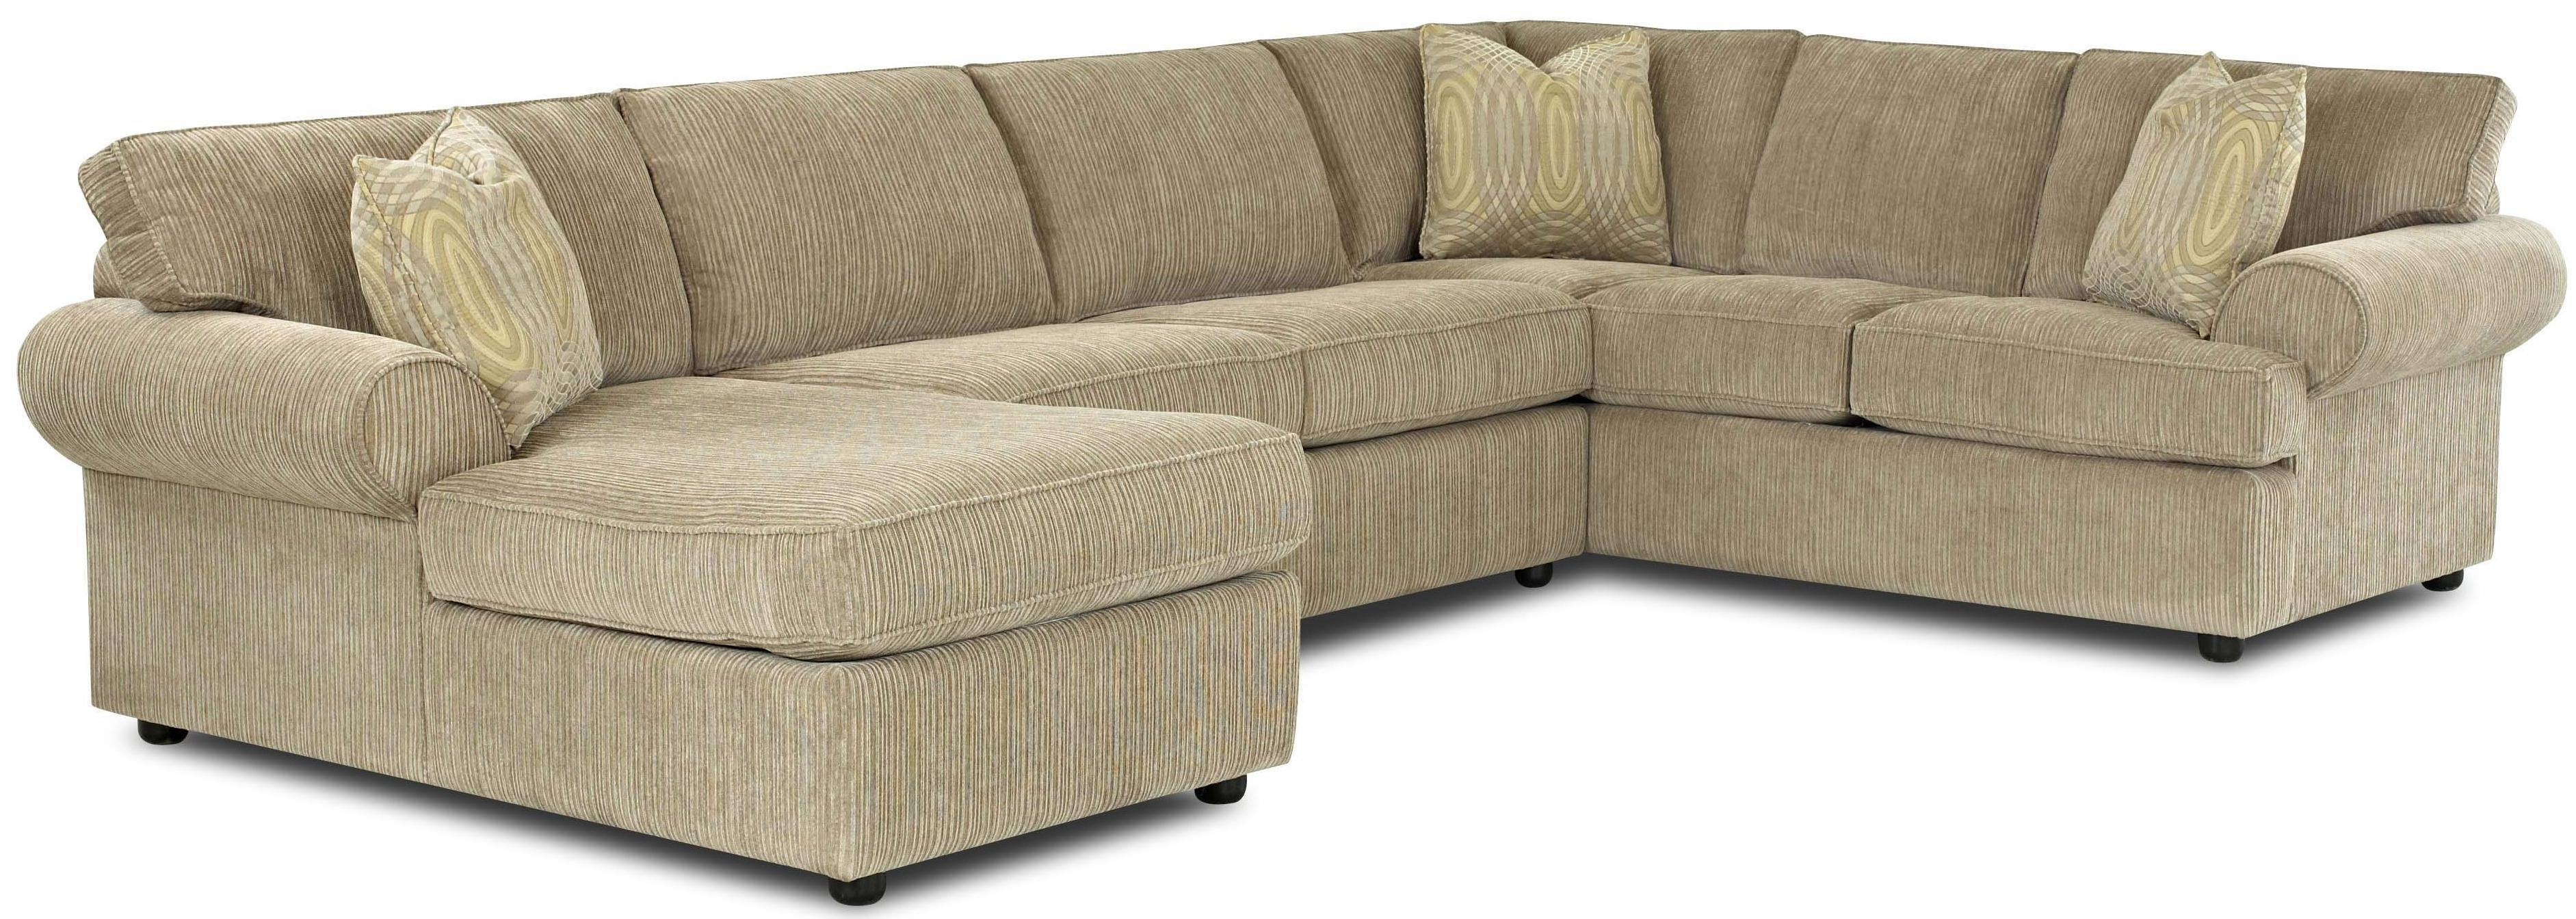 Sofas Center : Beautiful Leather Sectional Sleeper Sofa Photo Regarding Sleeper Recliner Sectional (View 12 of 20)